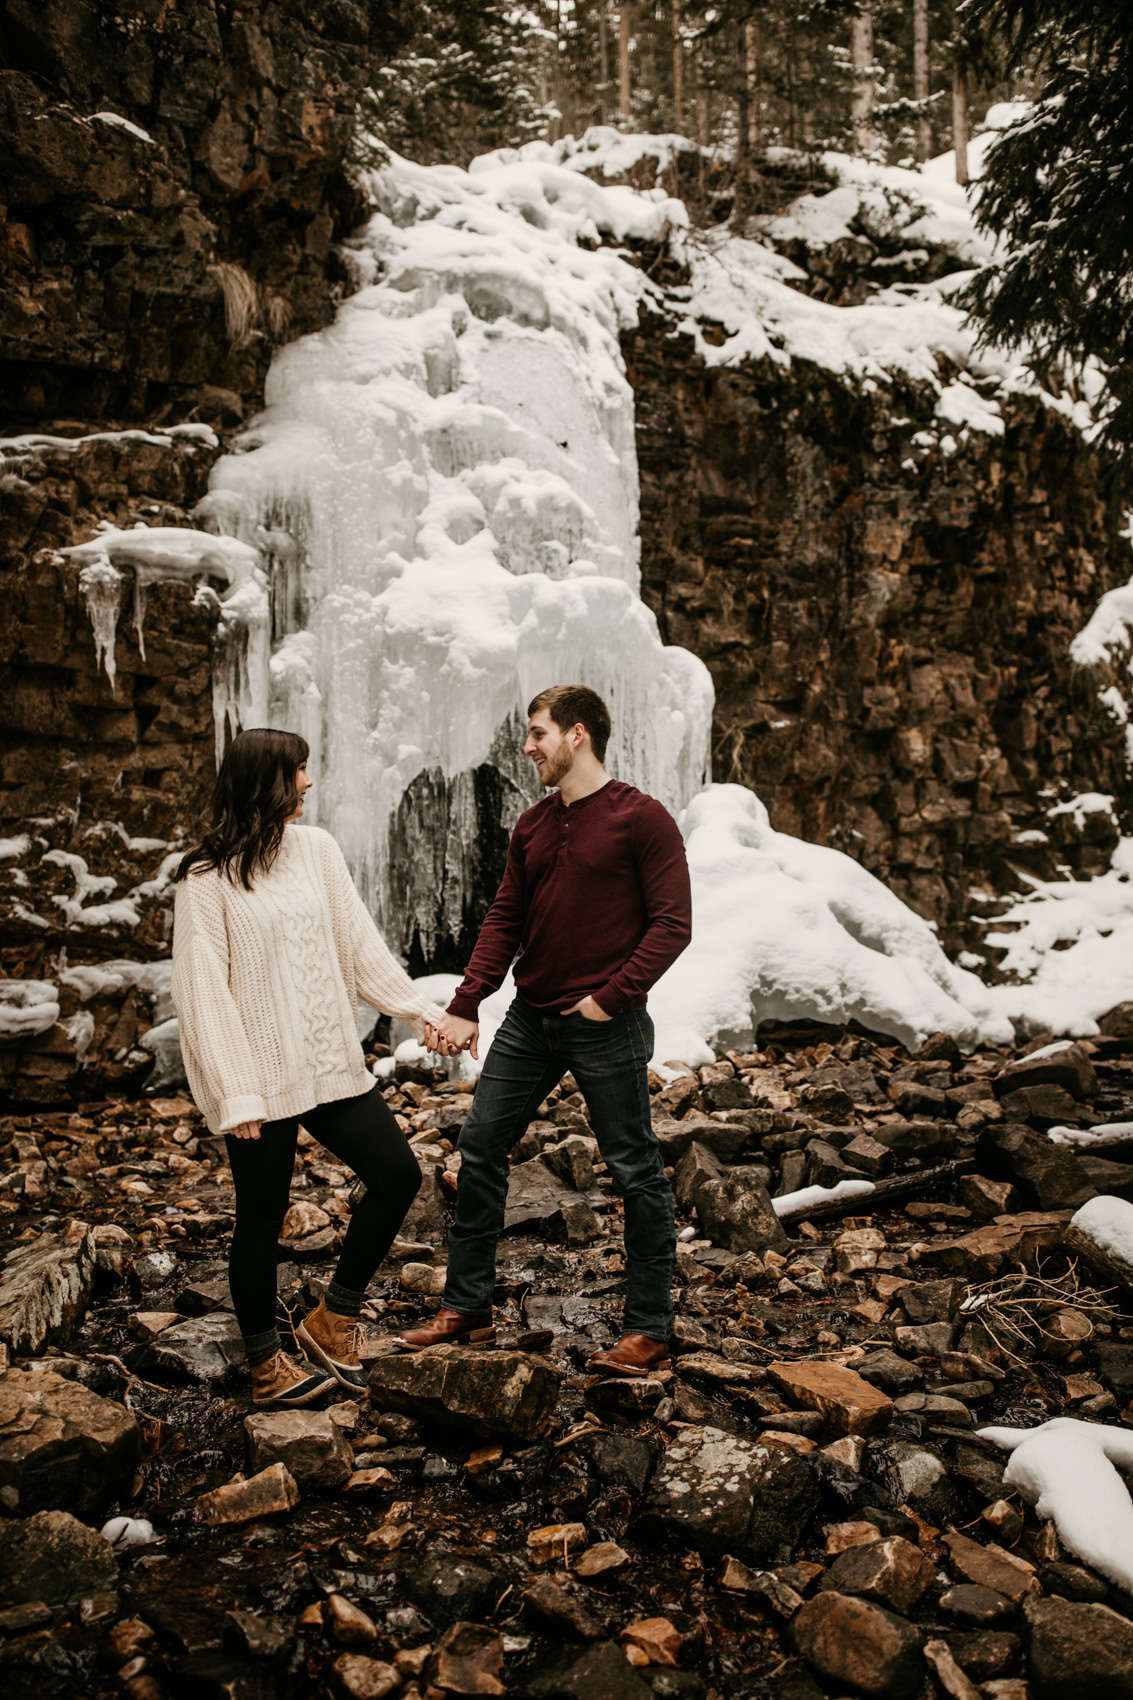 Molly-Trenton_Montana-Waterfall-Engagment-Session-4.jpg